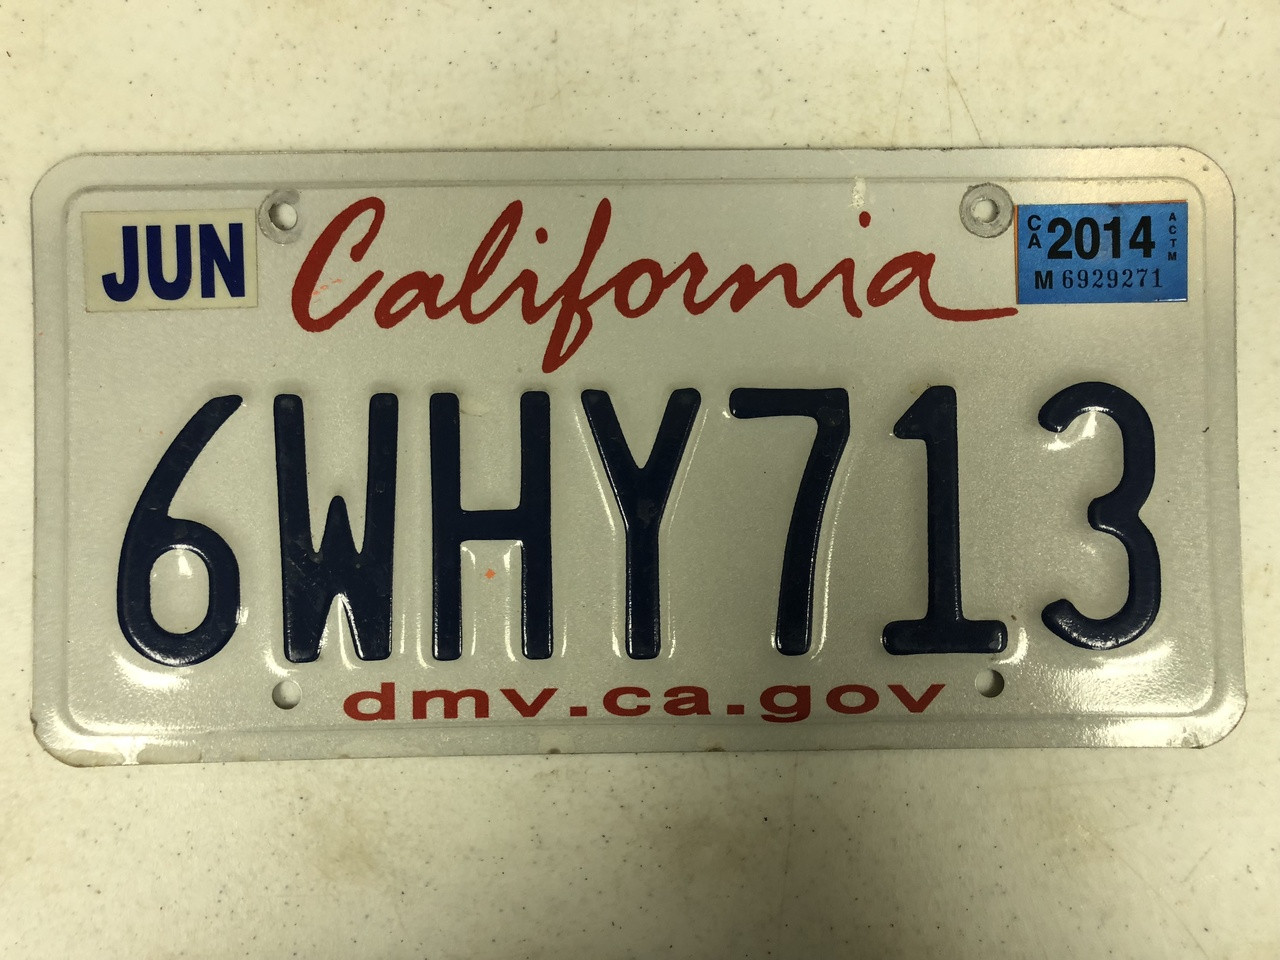 2014 Tag CALIFORNIA dmv   ca   gov License Plate 6WHY713 Why State DMV  Website